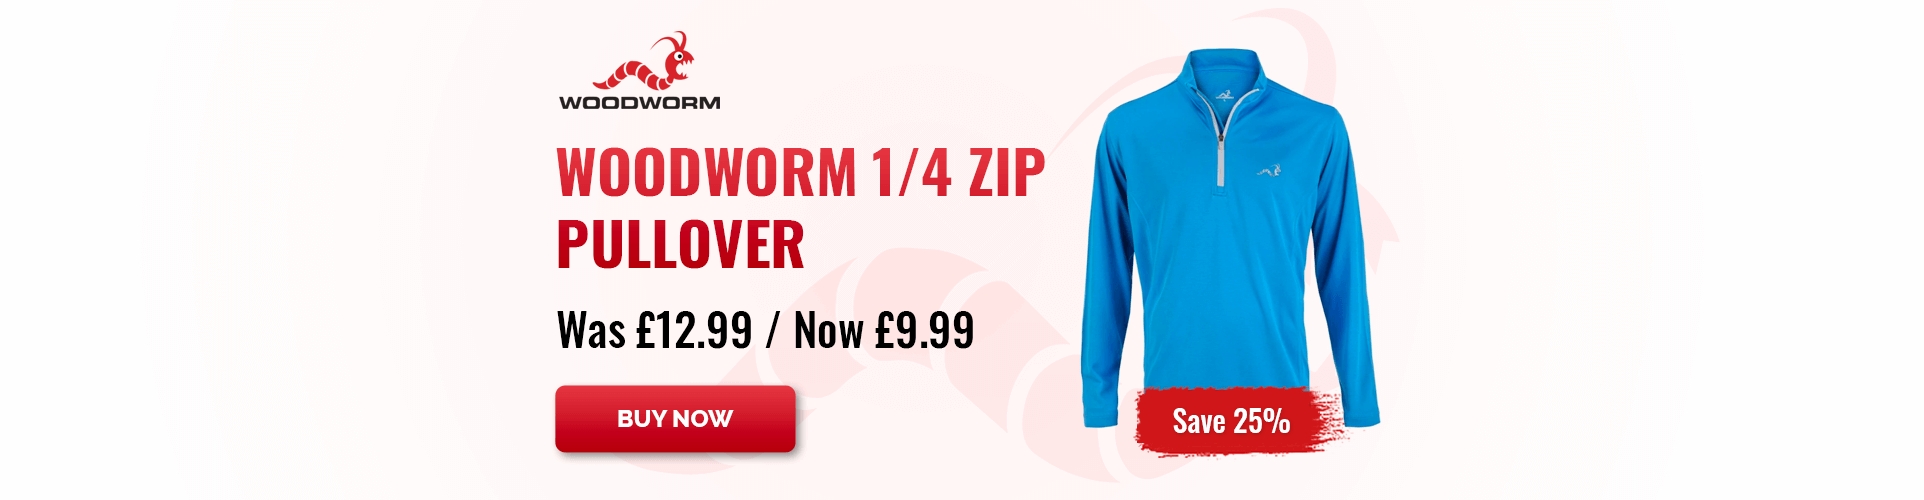 SAVE 25% - Woodworm 1/4 Zip Pullover Just £9.99